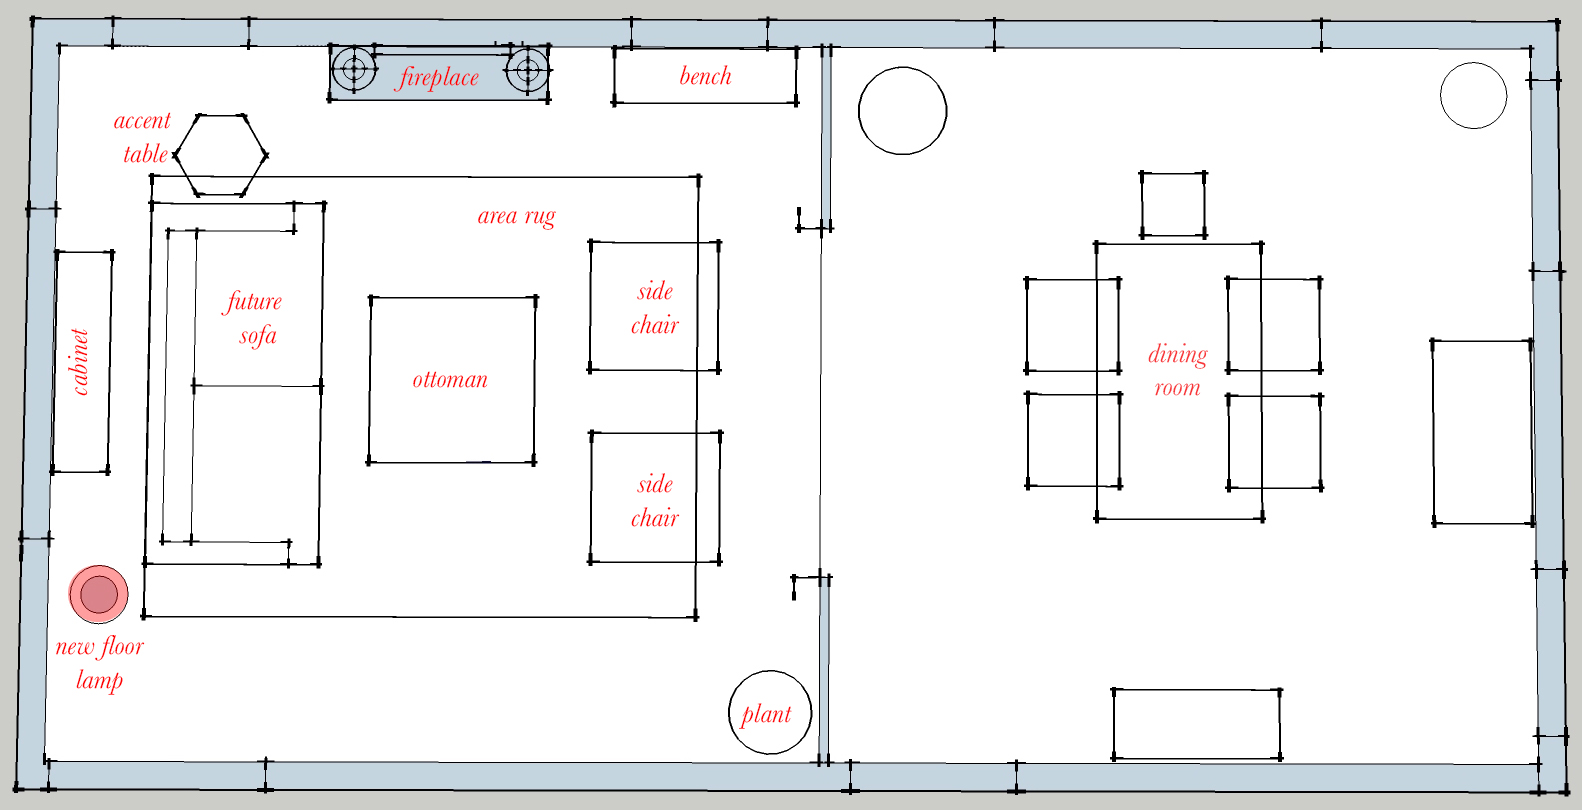 Everything that is marked is existing, but I did mark where she will add a floor lamp in the future.